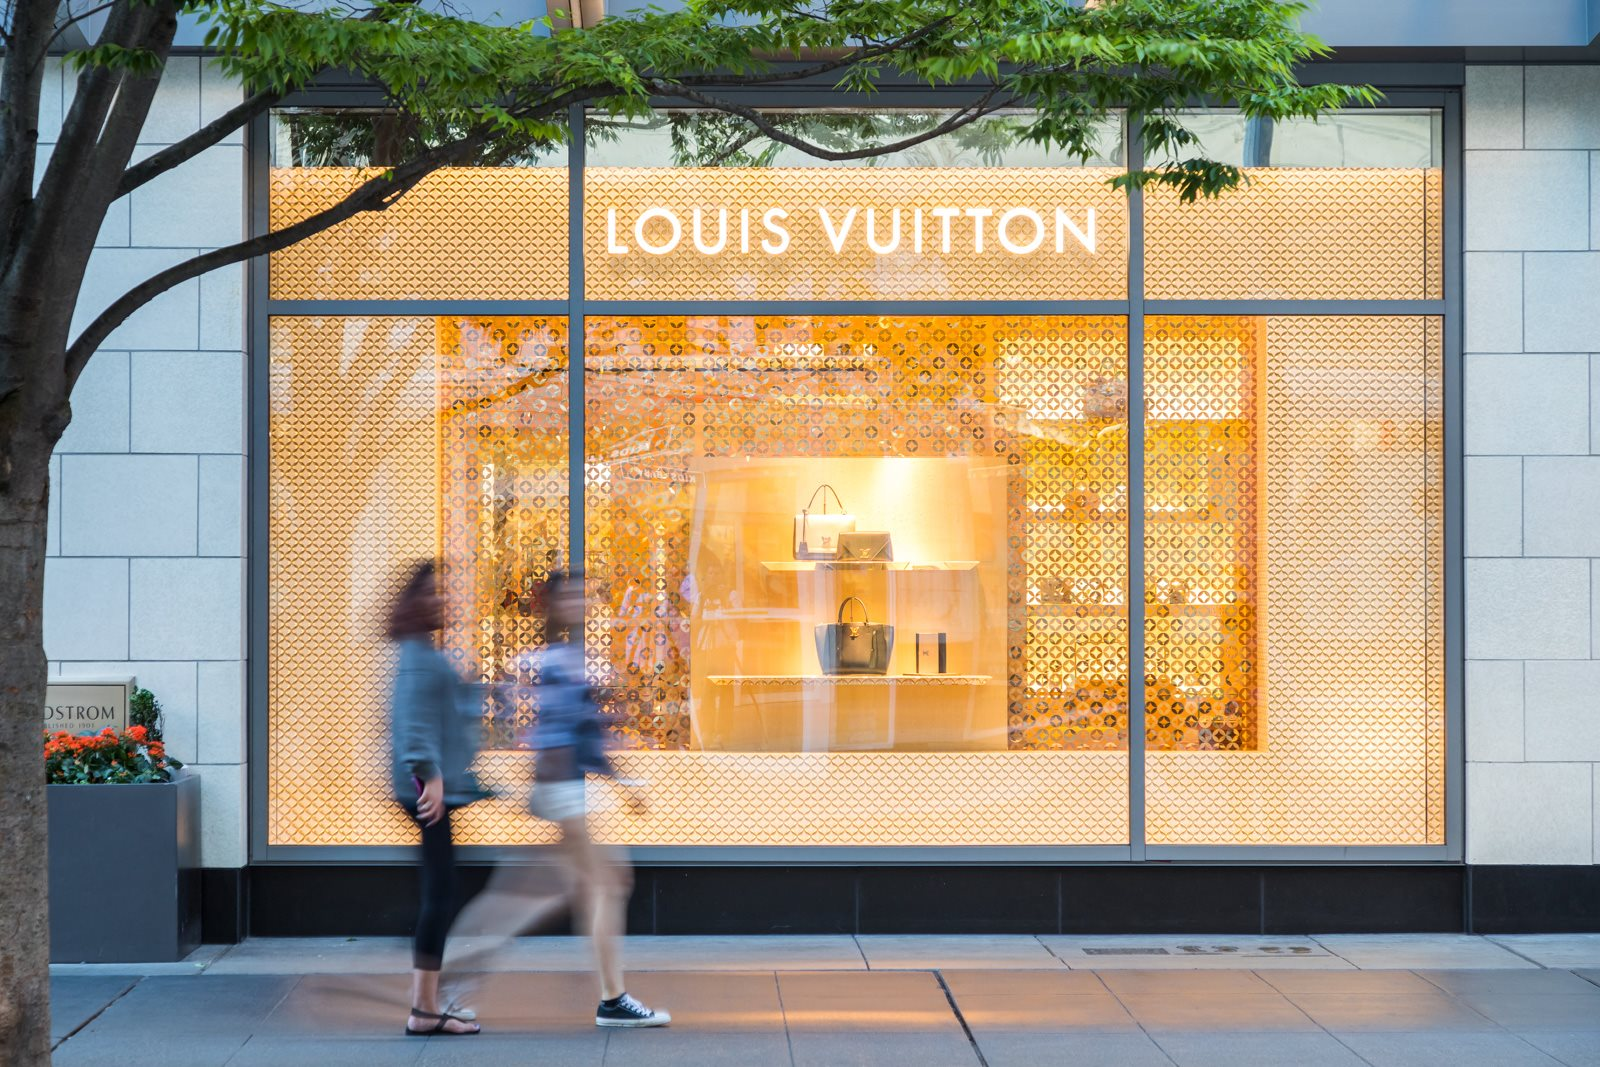 Nearby Shopping includes Louis Vuitton at Stratus, 820 Lenora St., Seattle